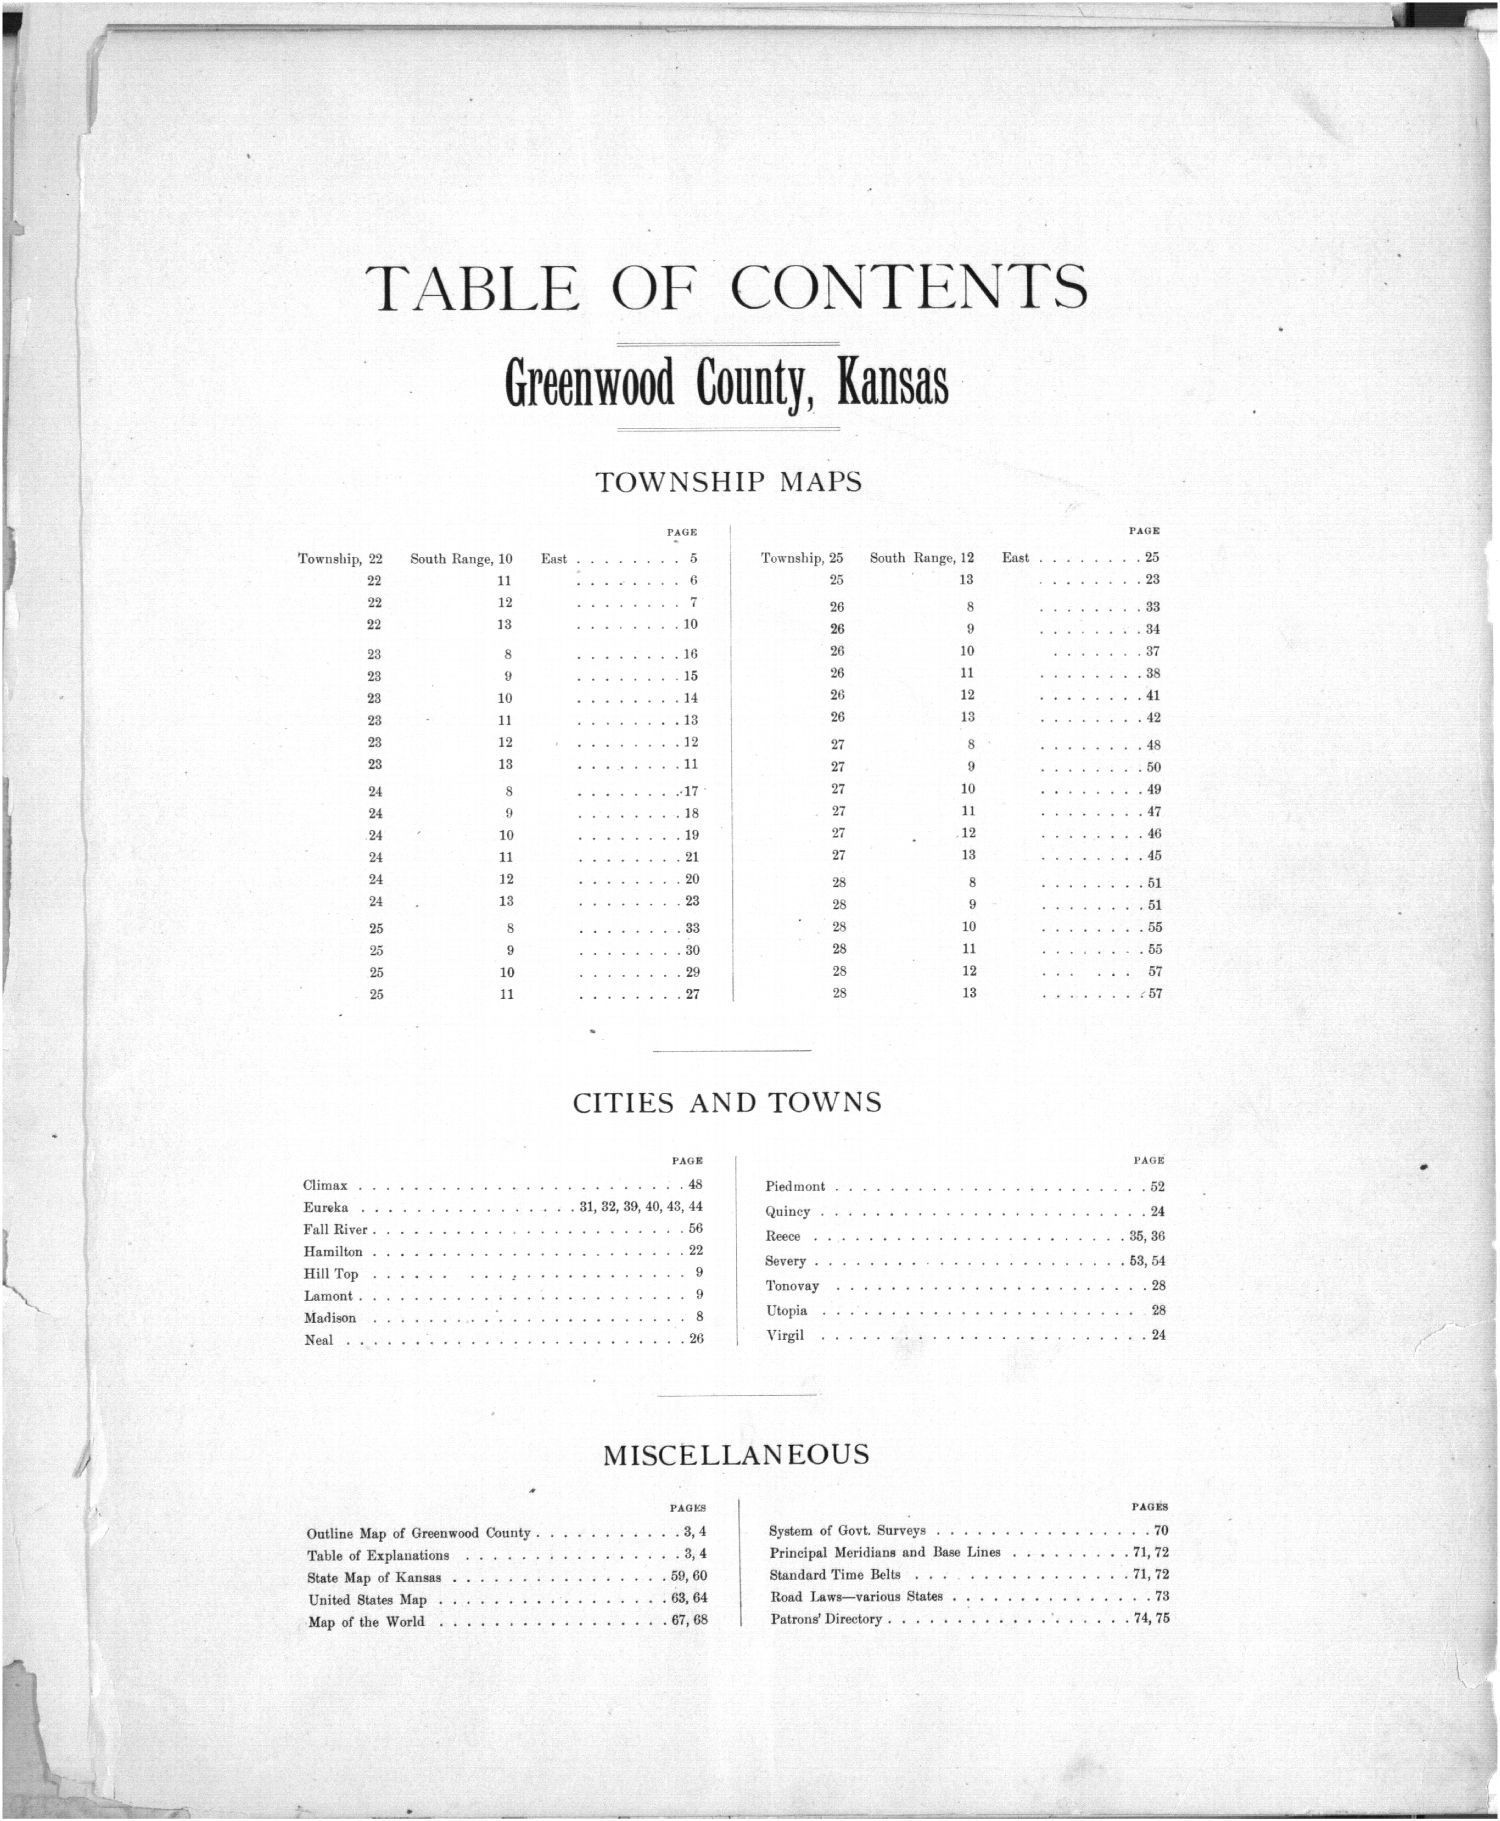 Plat book of Greenwood County, Kansas - Table of Contents